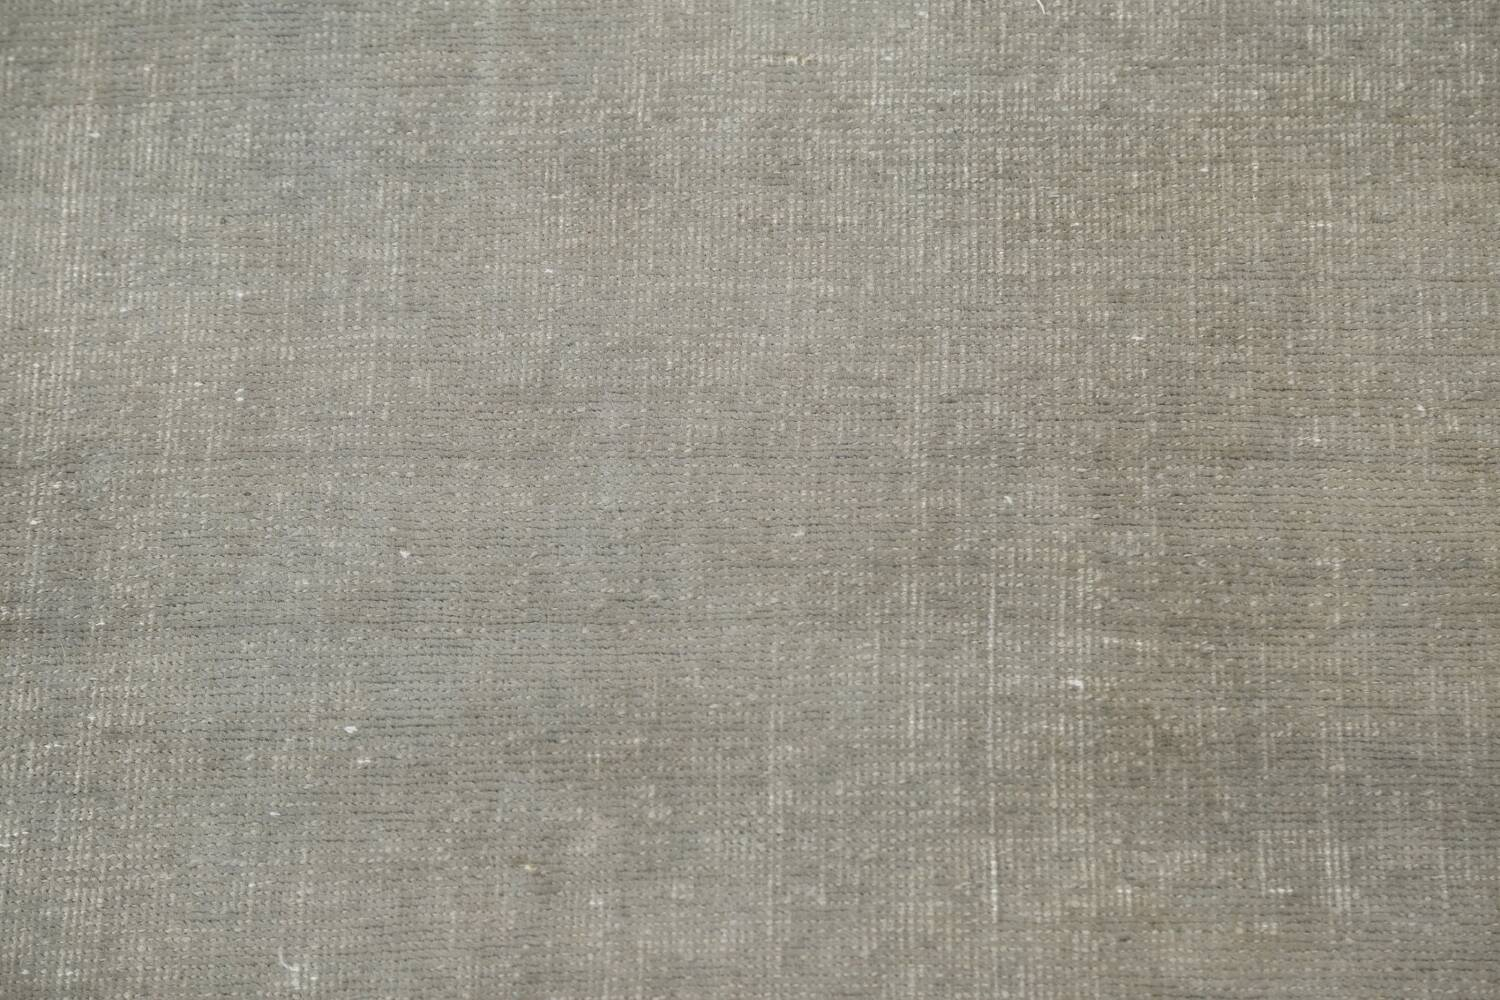 Distressed Over-Dyed Tabriz Persian Runner Rug 2x9 image 9